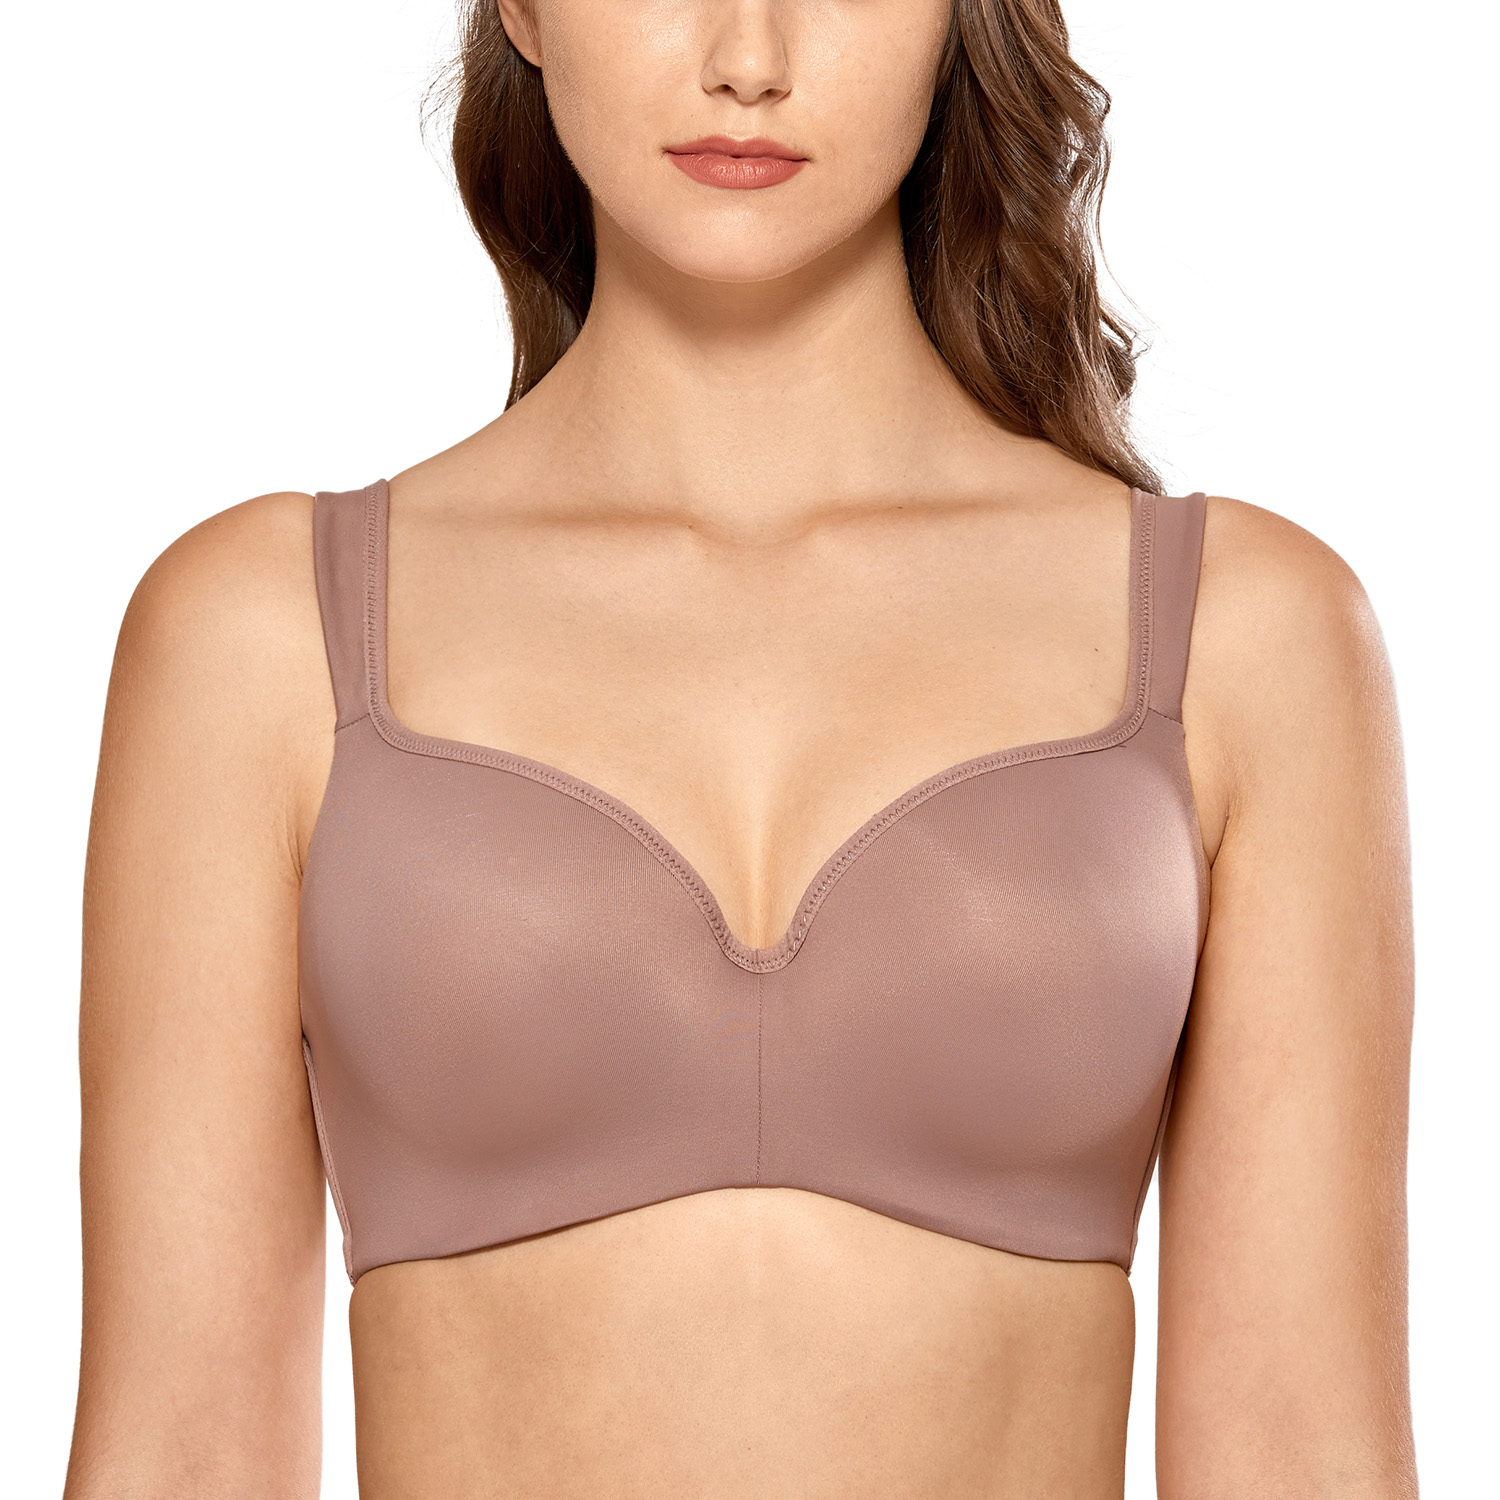 Women's Smooth Full Coverage Lightly Padded Underwire Balconette T-Shirt Bra Plus Size